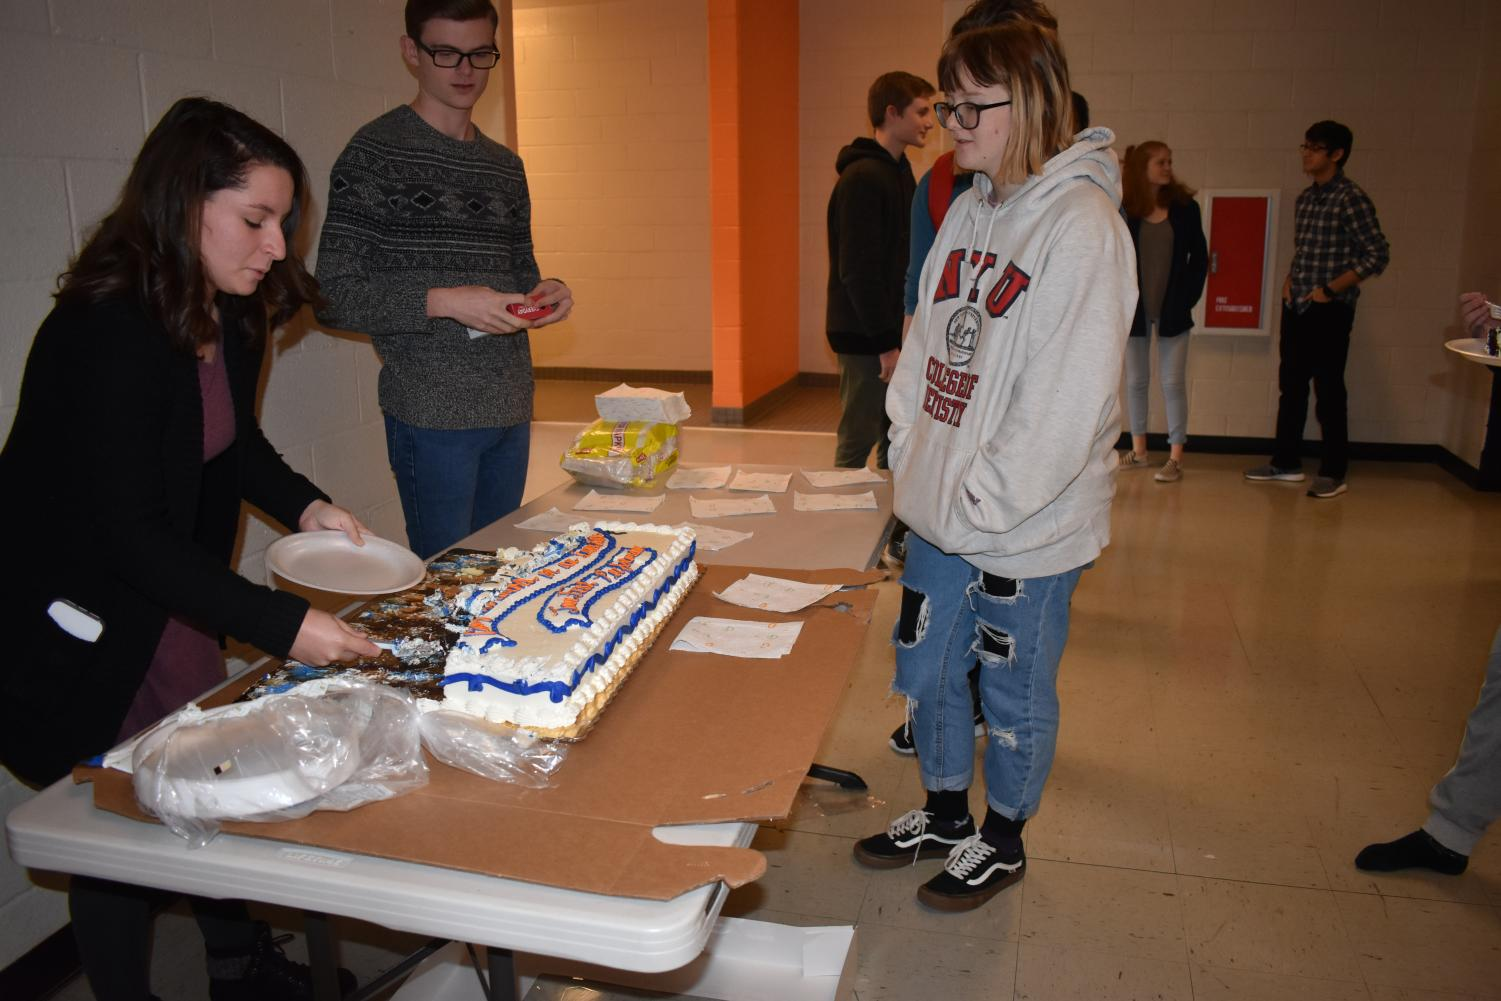 """Kennesaw State student teacher, Brianna Curtis and Senior Andrew Riner distributed cake to students to celebrate the band's performance at the University of Georgia. Students enjoy the celebratory cake from their success at their trip on Friday, January 18. """"We performed at UGA because we submitted a recording and they accepted us. It was fun because we got to perform in front of all these students from around Georgia,"""" senior Sarah Goddard said."""